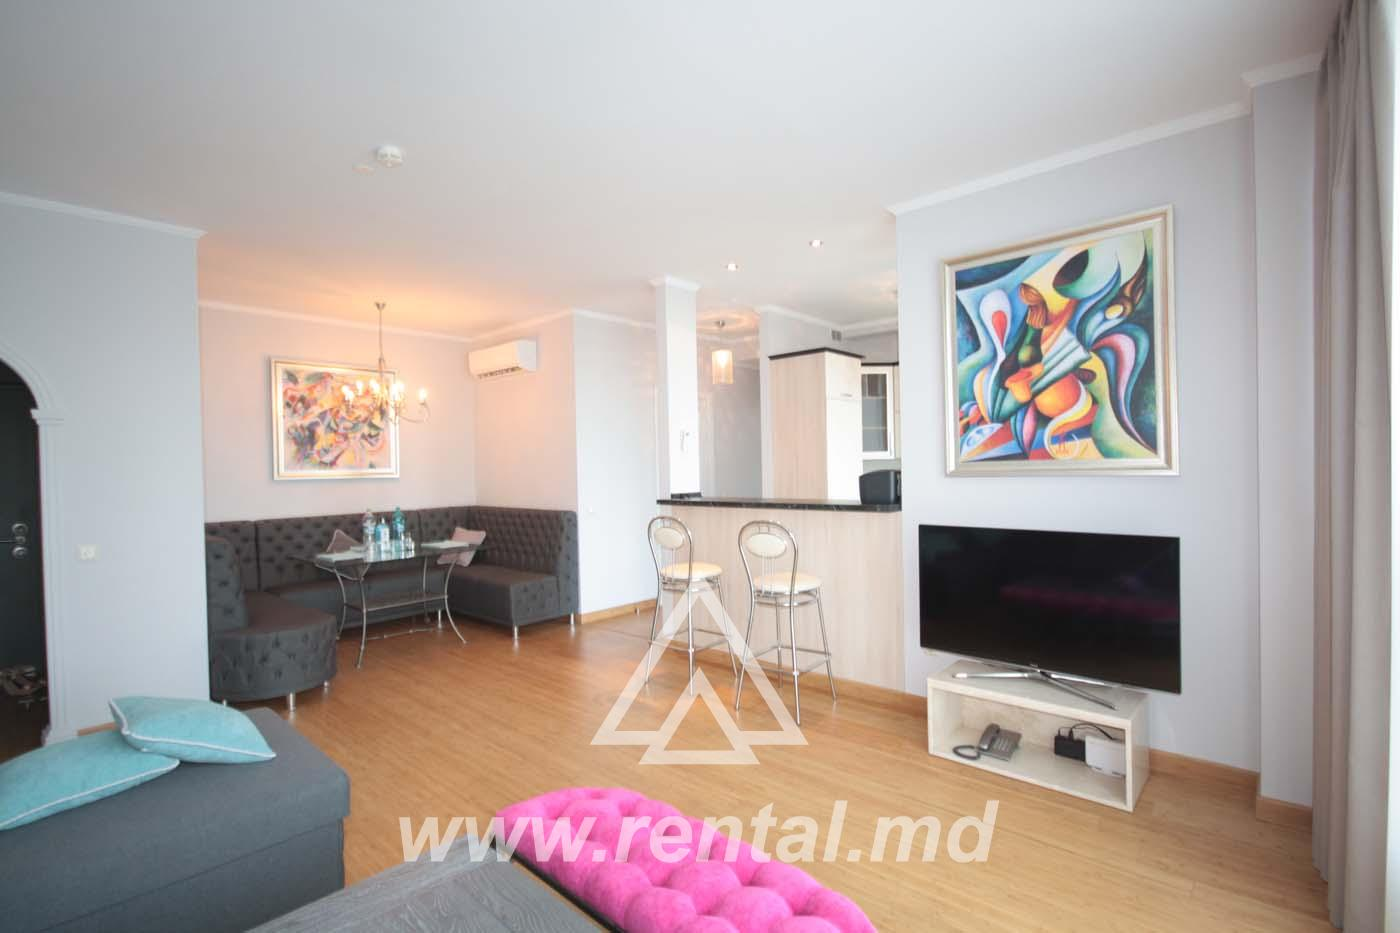 For rent 2-rooms apartment in Chisinau in Crown Plaza Park